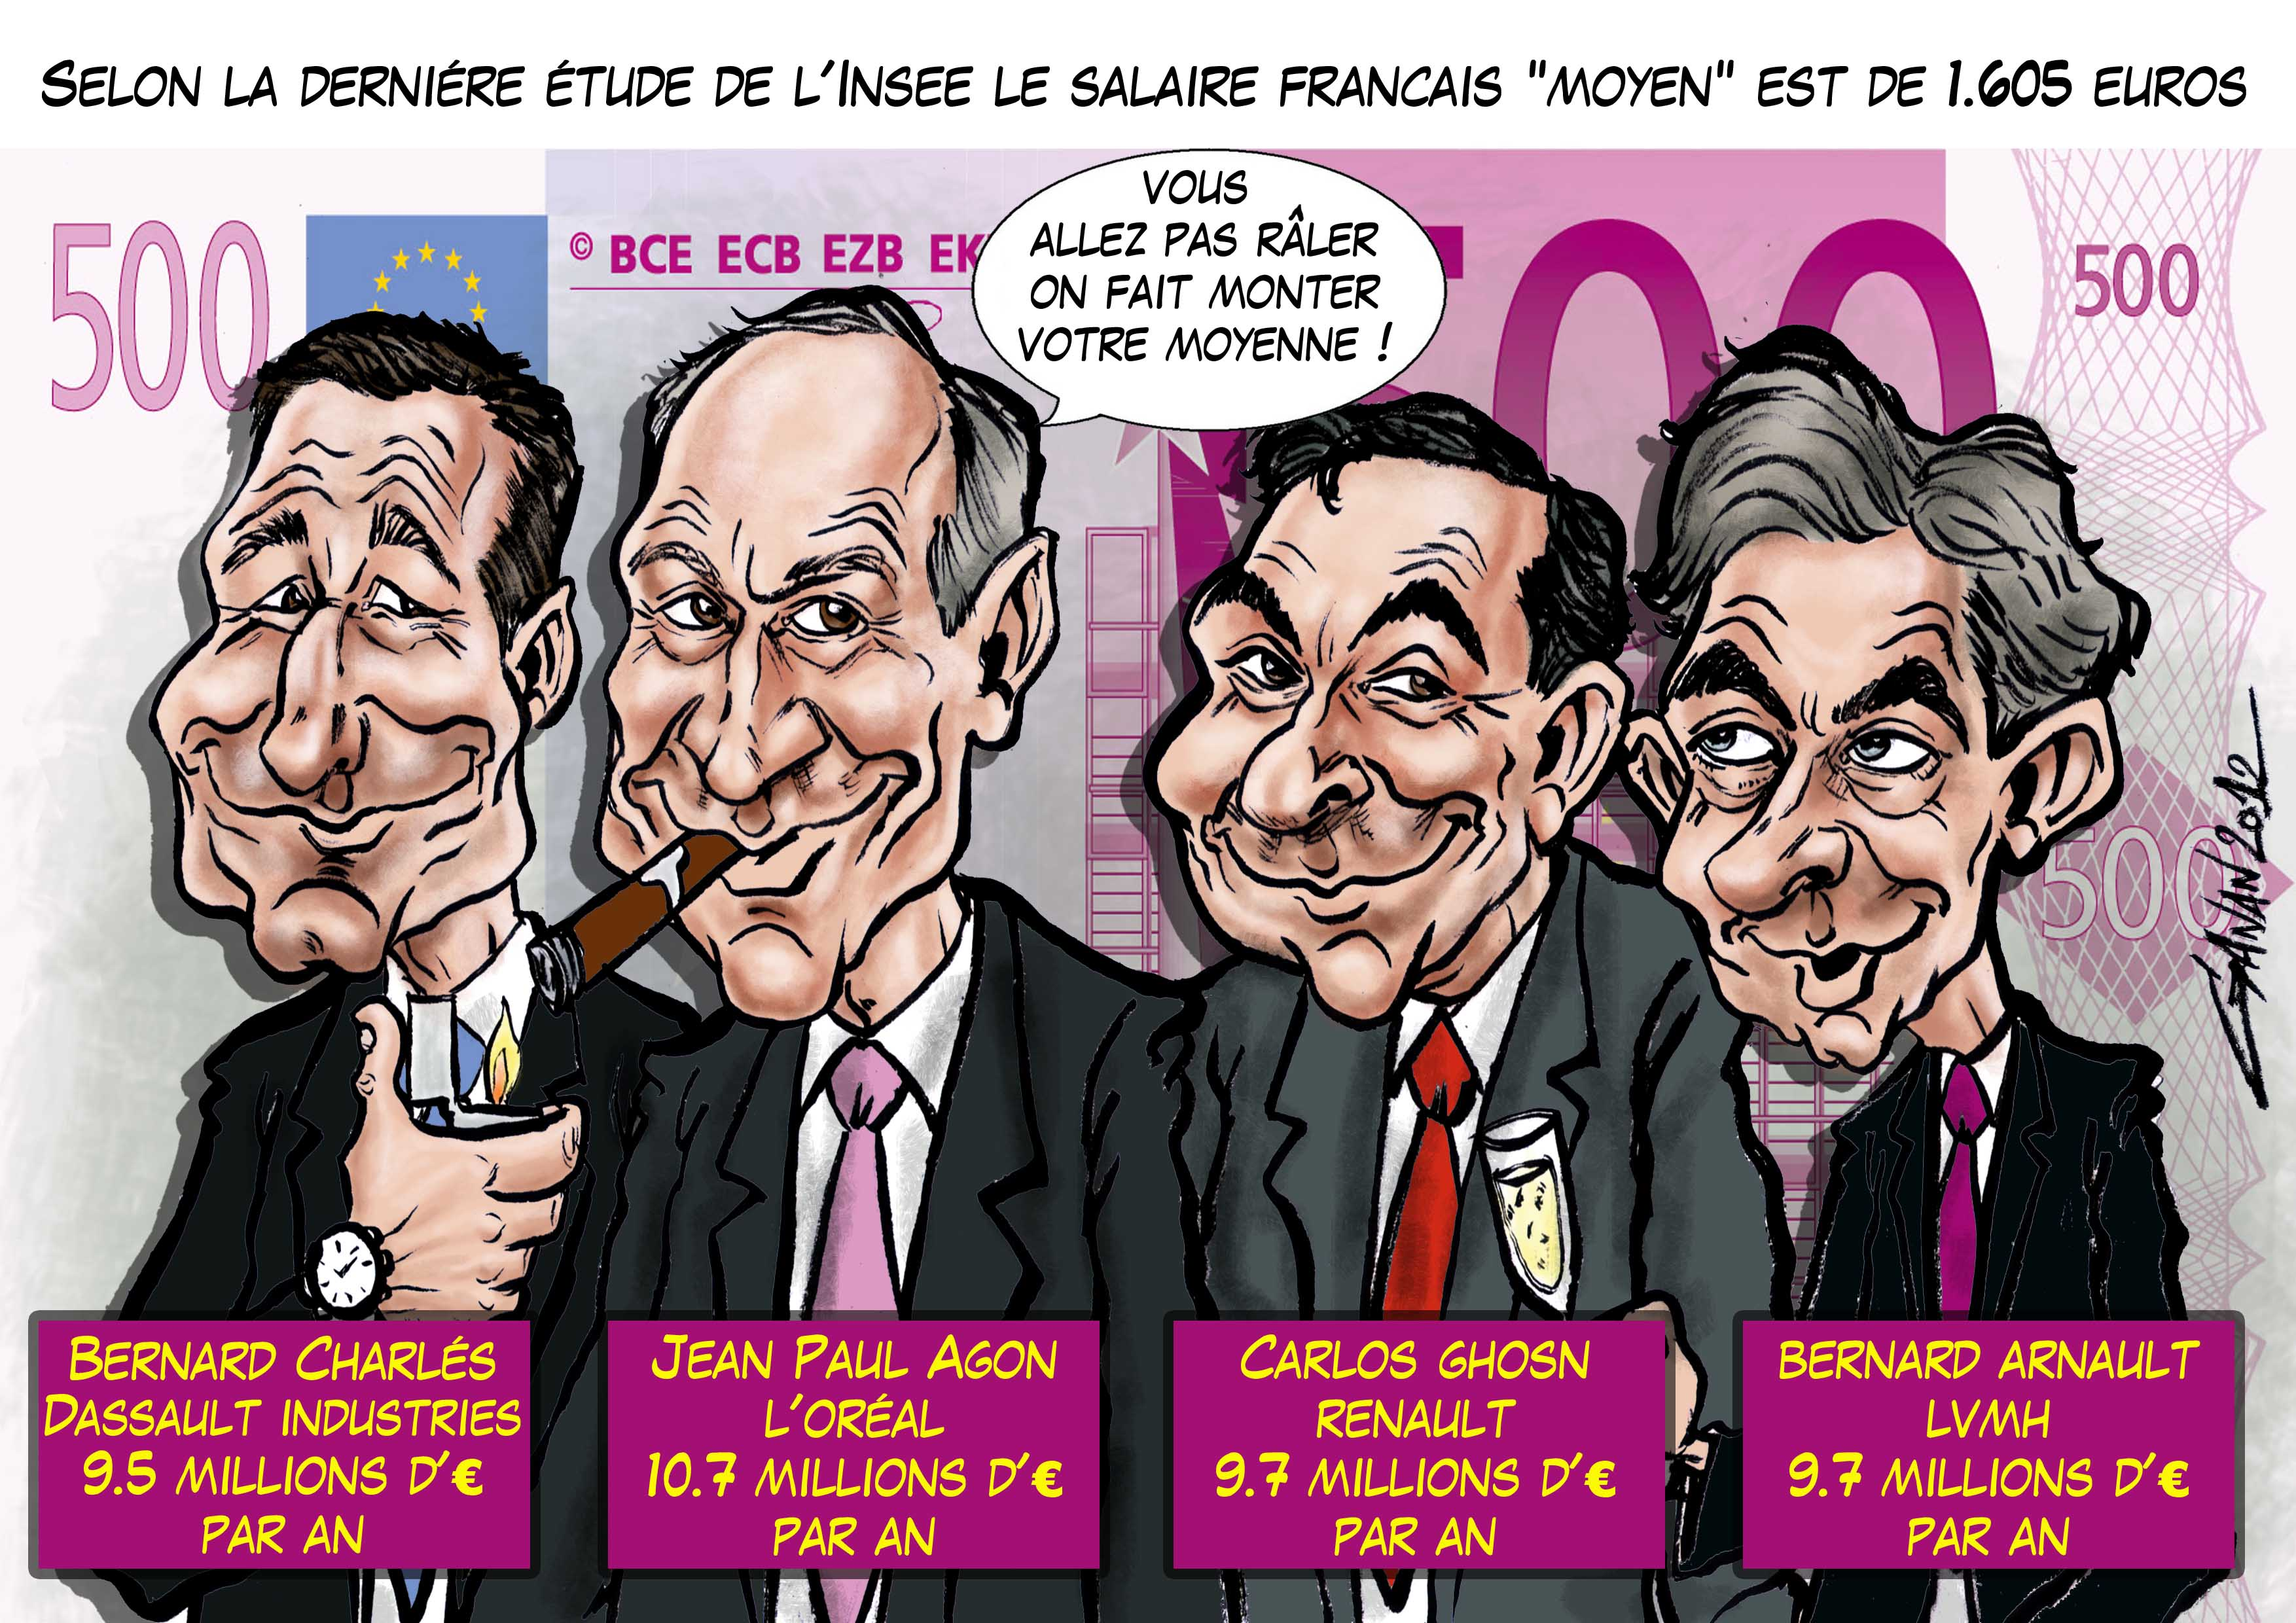 http://www.radio-couleur-chartreuse.org/wp-content/uploads/2018/11/caricature-grands-patrons-copie.jpg